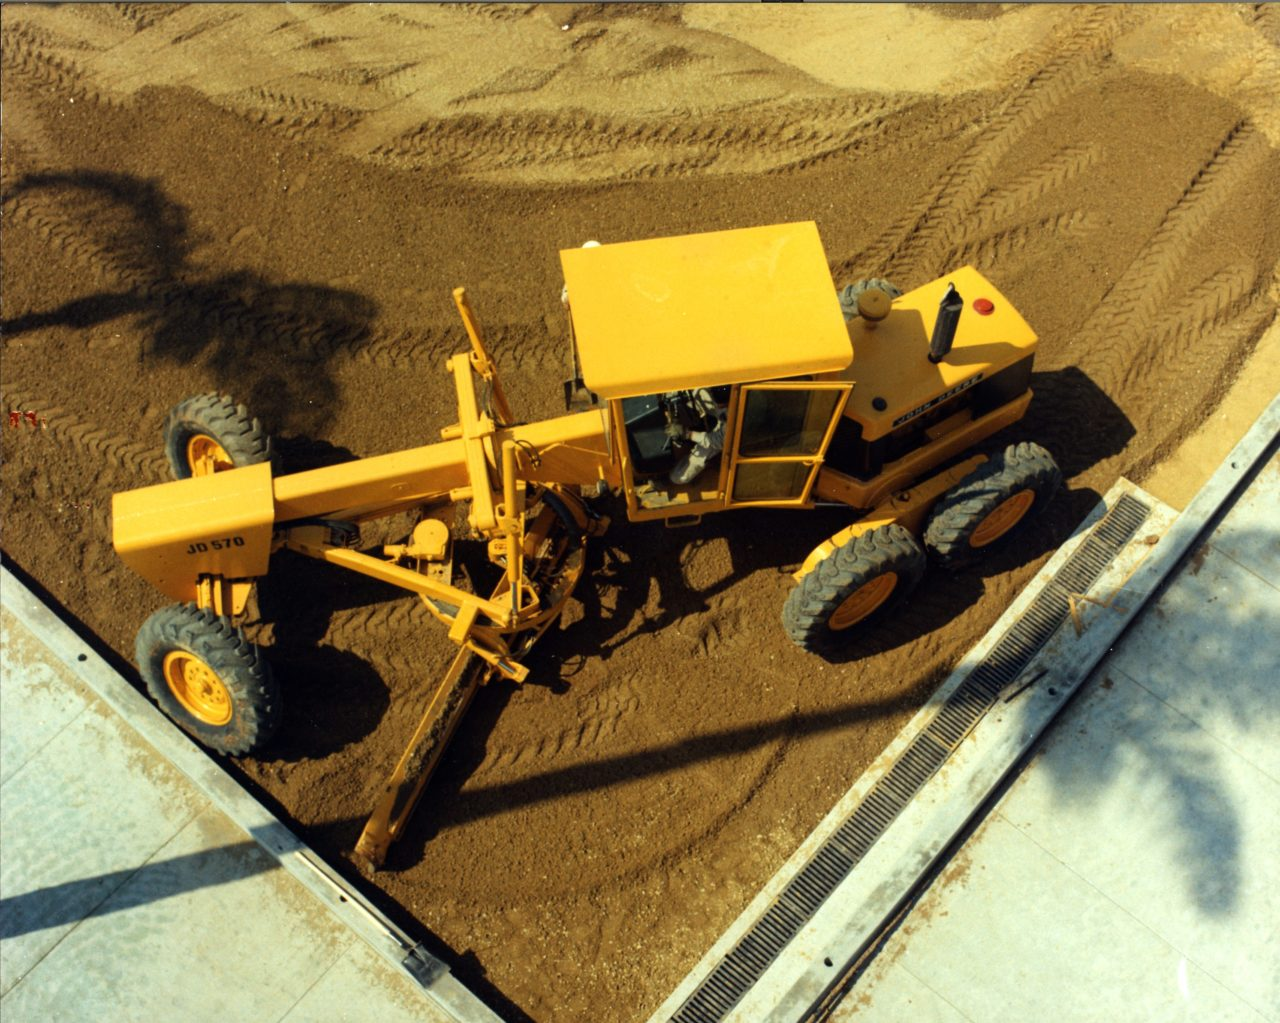 Blast from the Past; The JD570 Motor Grader in action.